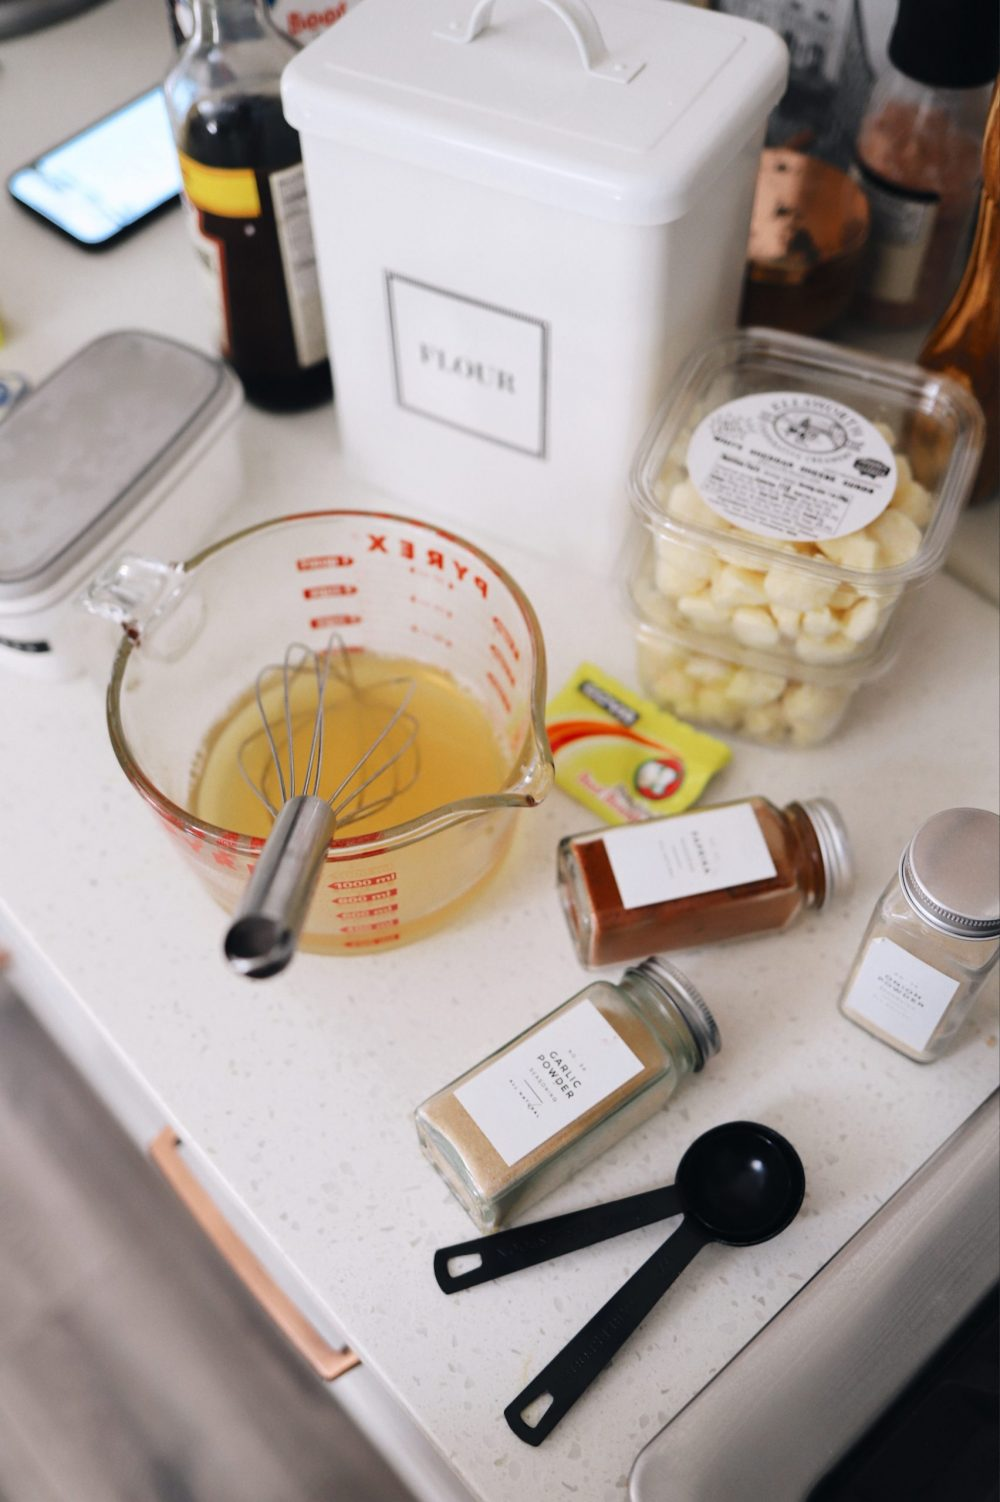 An Easy Steak Poutine Recipe with Fries and Gravy |Poutine Recipe by popular Florida lifestyle blog, Fresh Mommy Blog: image of spice jars, chicken stock in a pyrex glass measuring cup, and cheese curds.